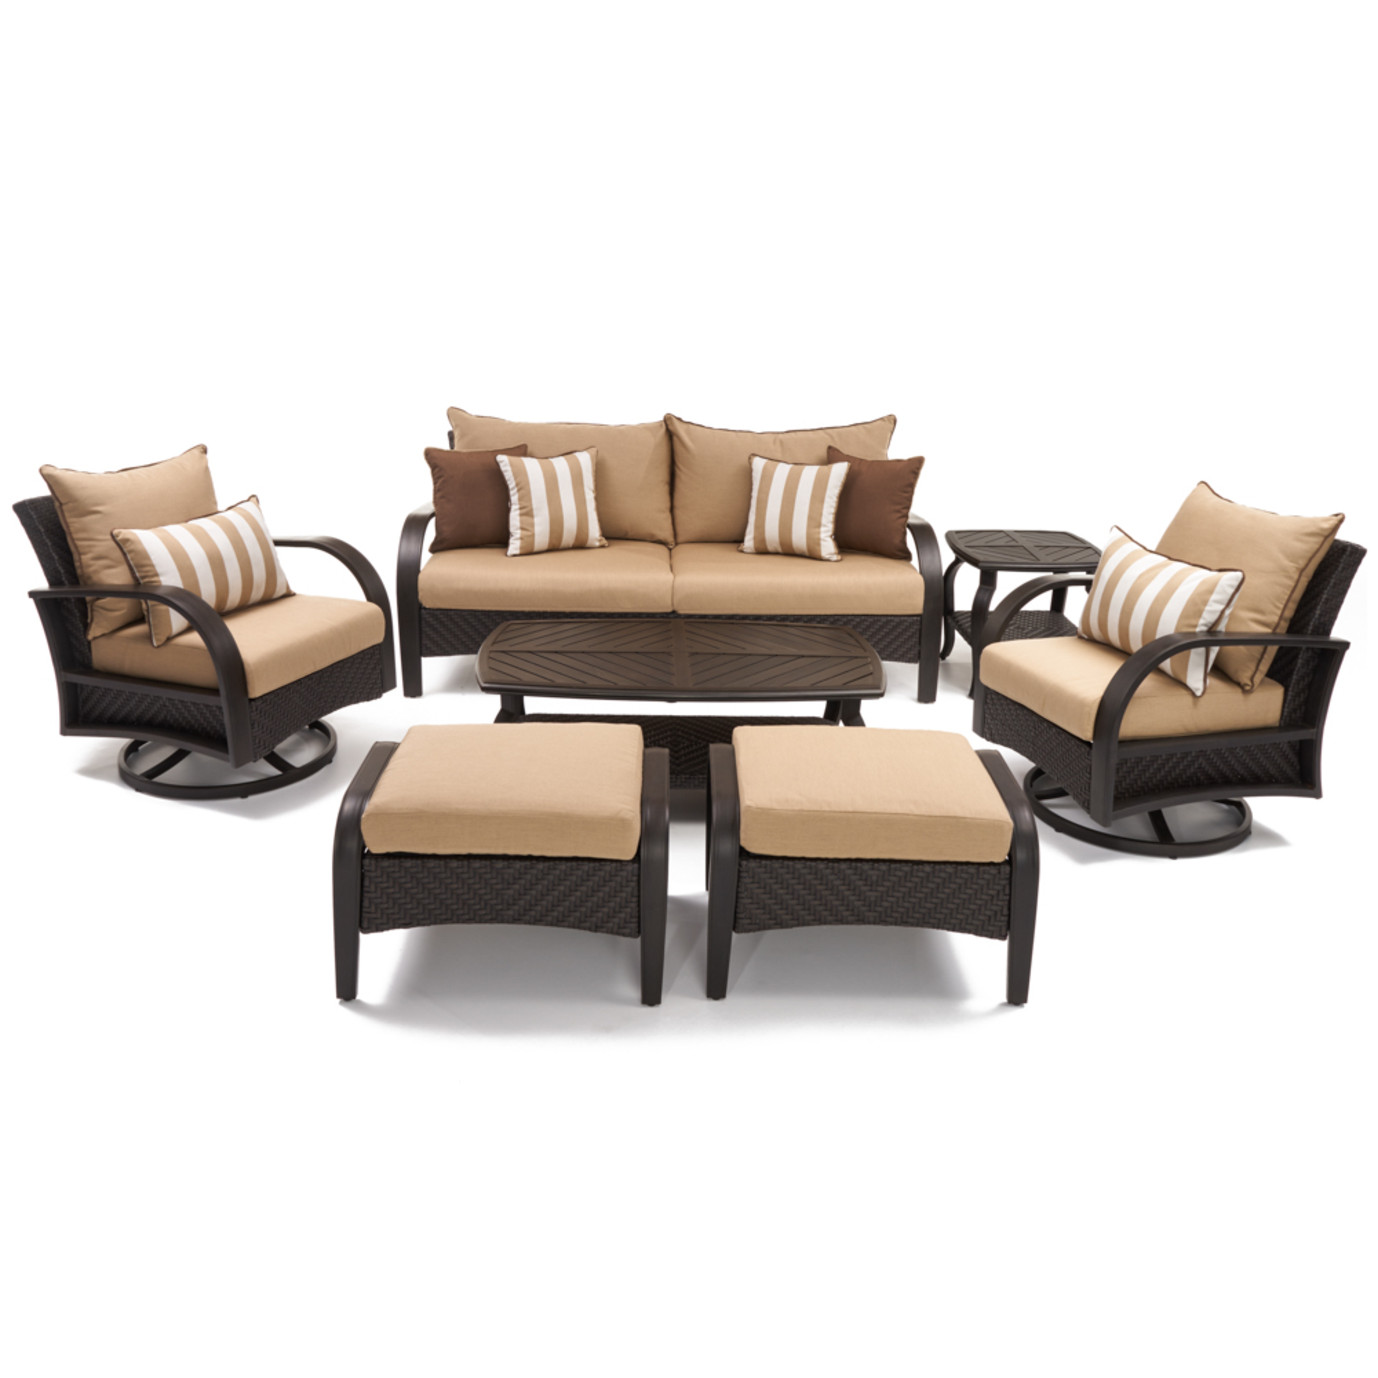 Barcelo™ 7pc Motion Club Deep Seating Set - Maxim Beige